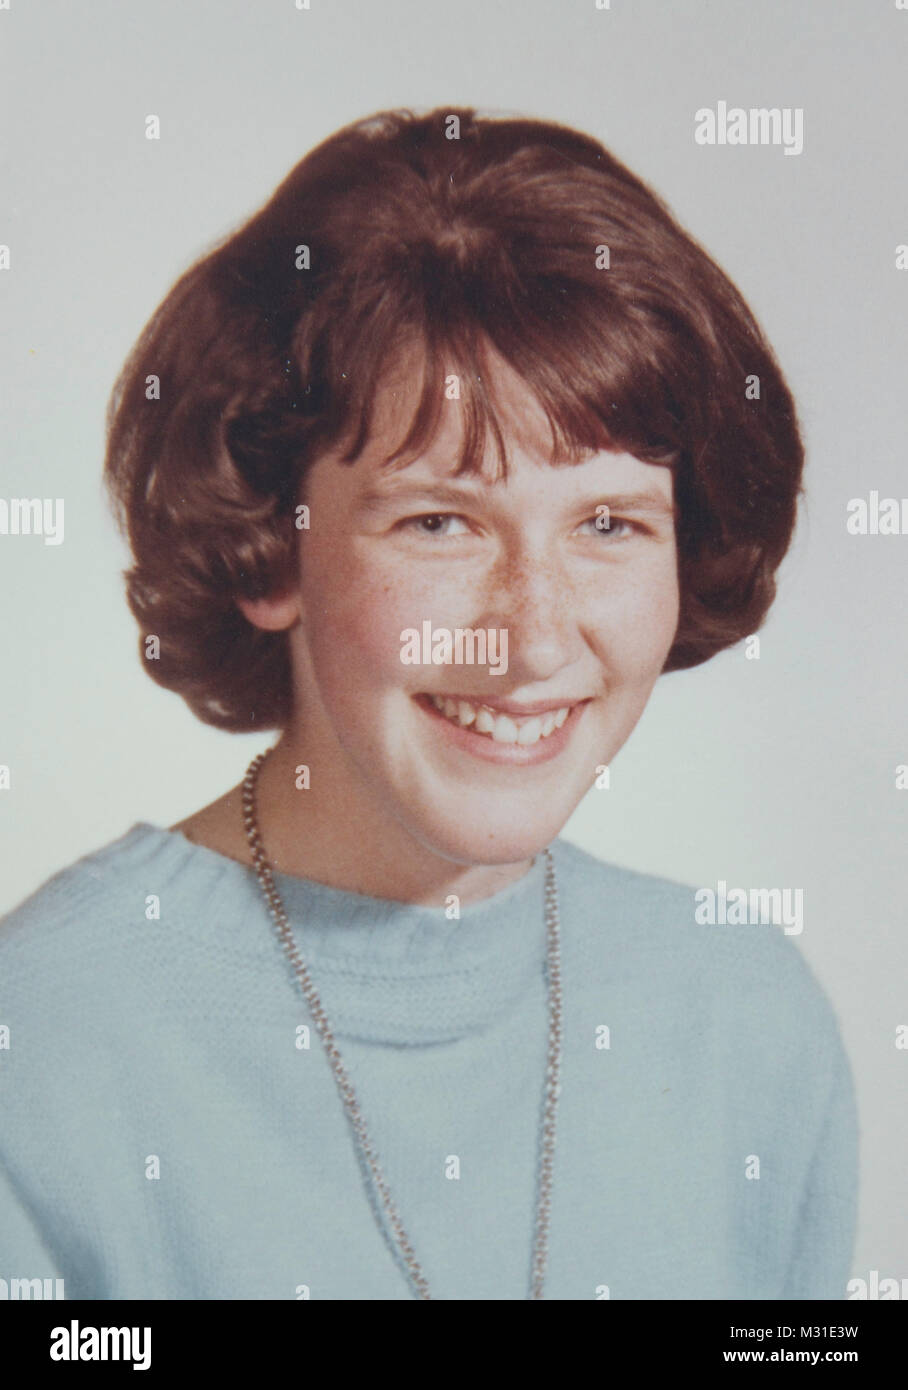 Vintage School Photo of Young Girl, United States - Stock Image